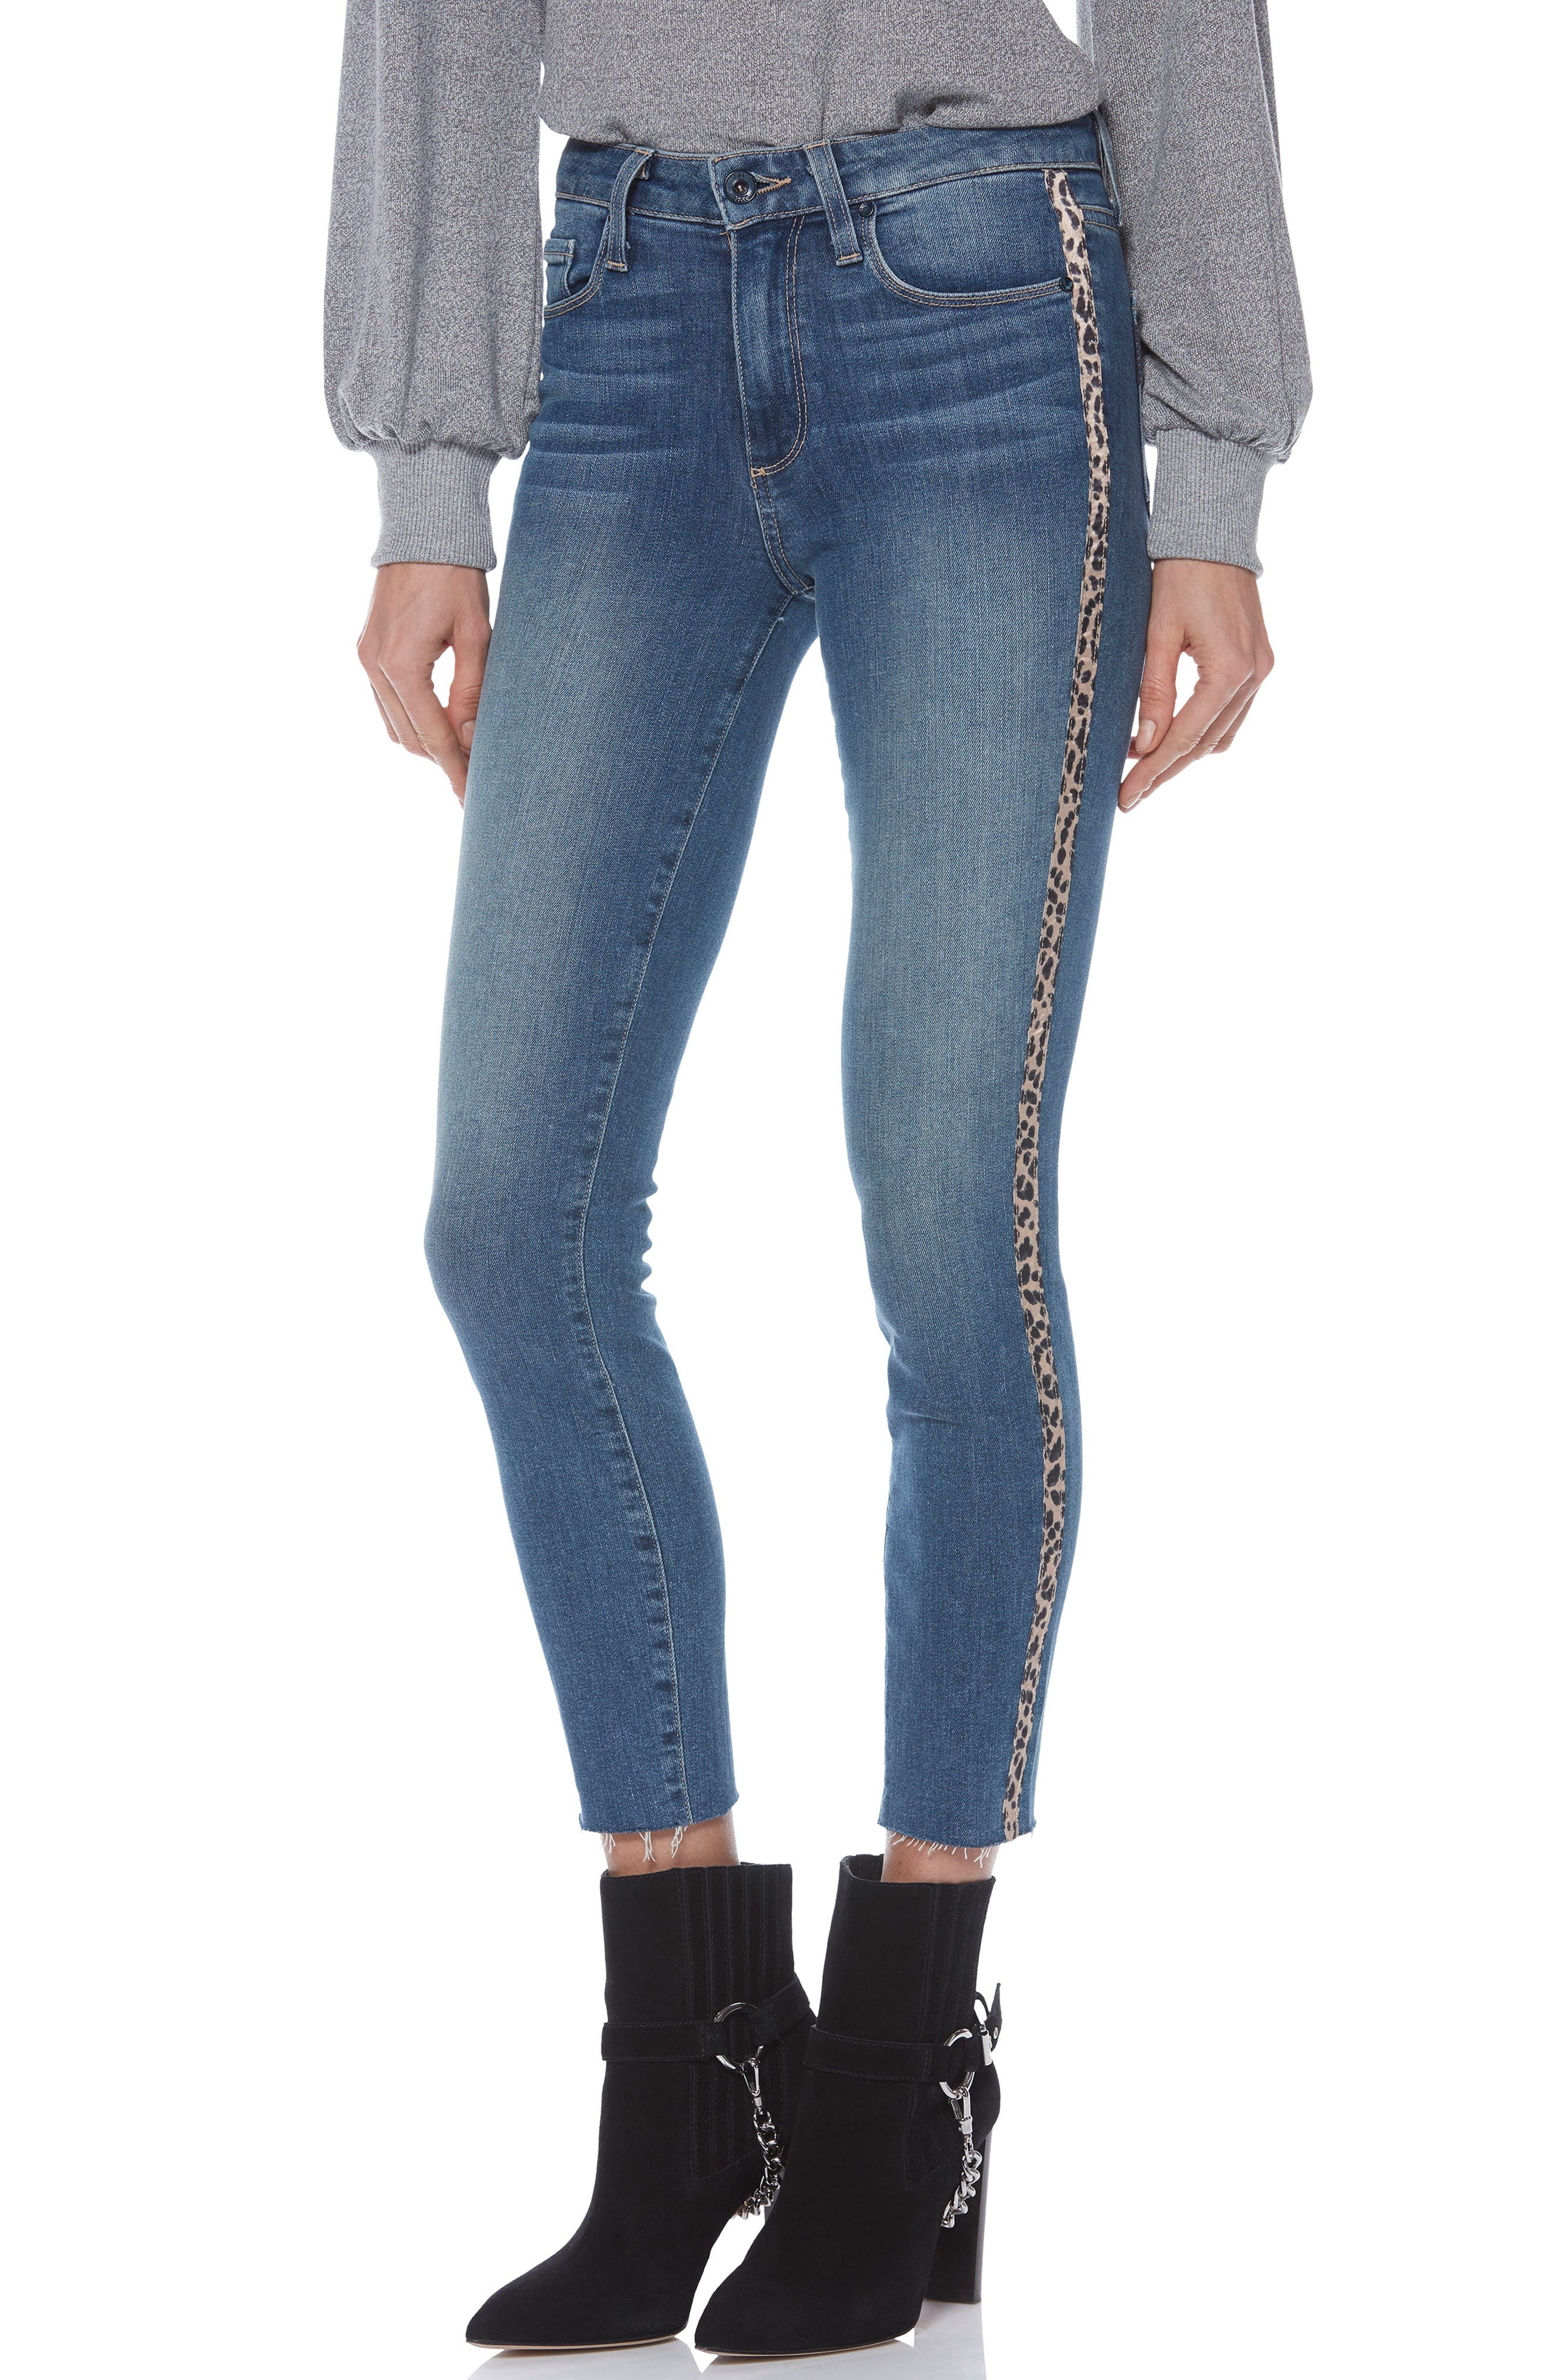 PAIGE, Hoxton High Waist Raw Hem Crop Skinny Jeans, Main thumbnail 1, color, BARKLEY W/ LEOPARD